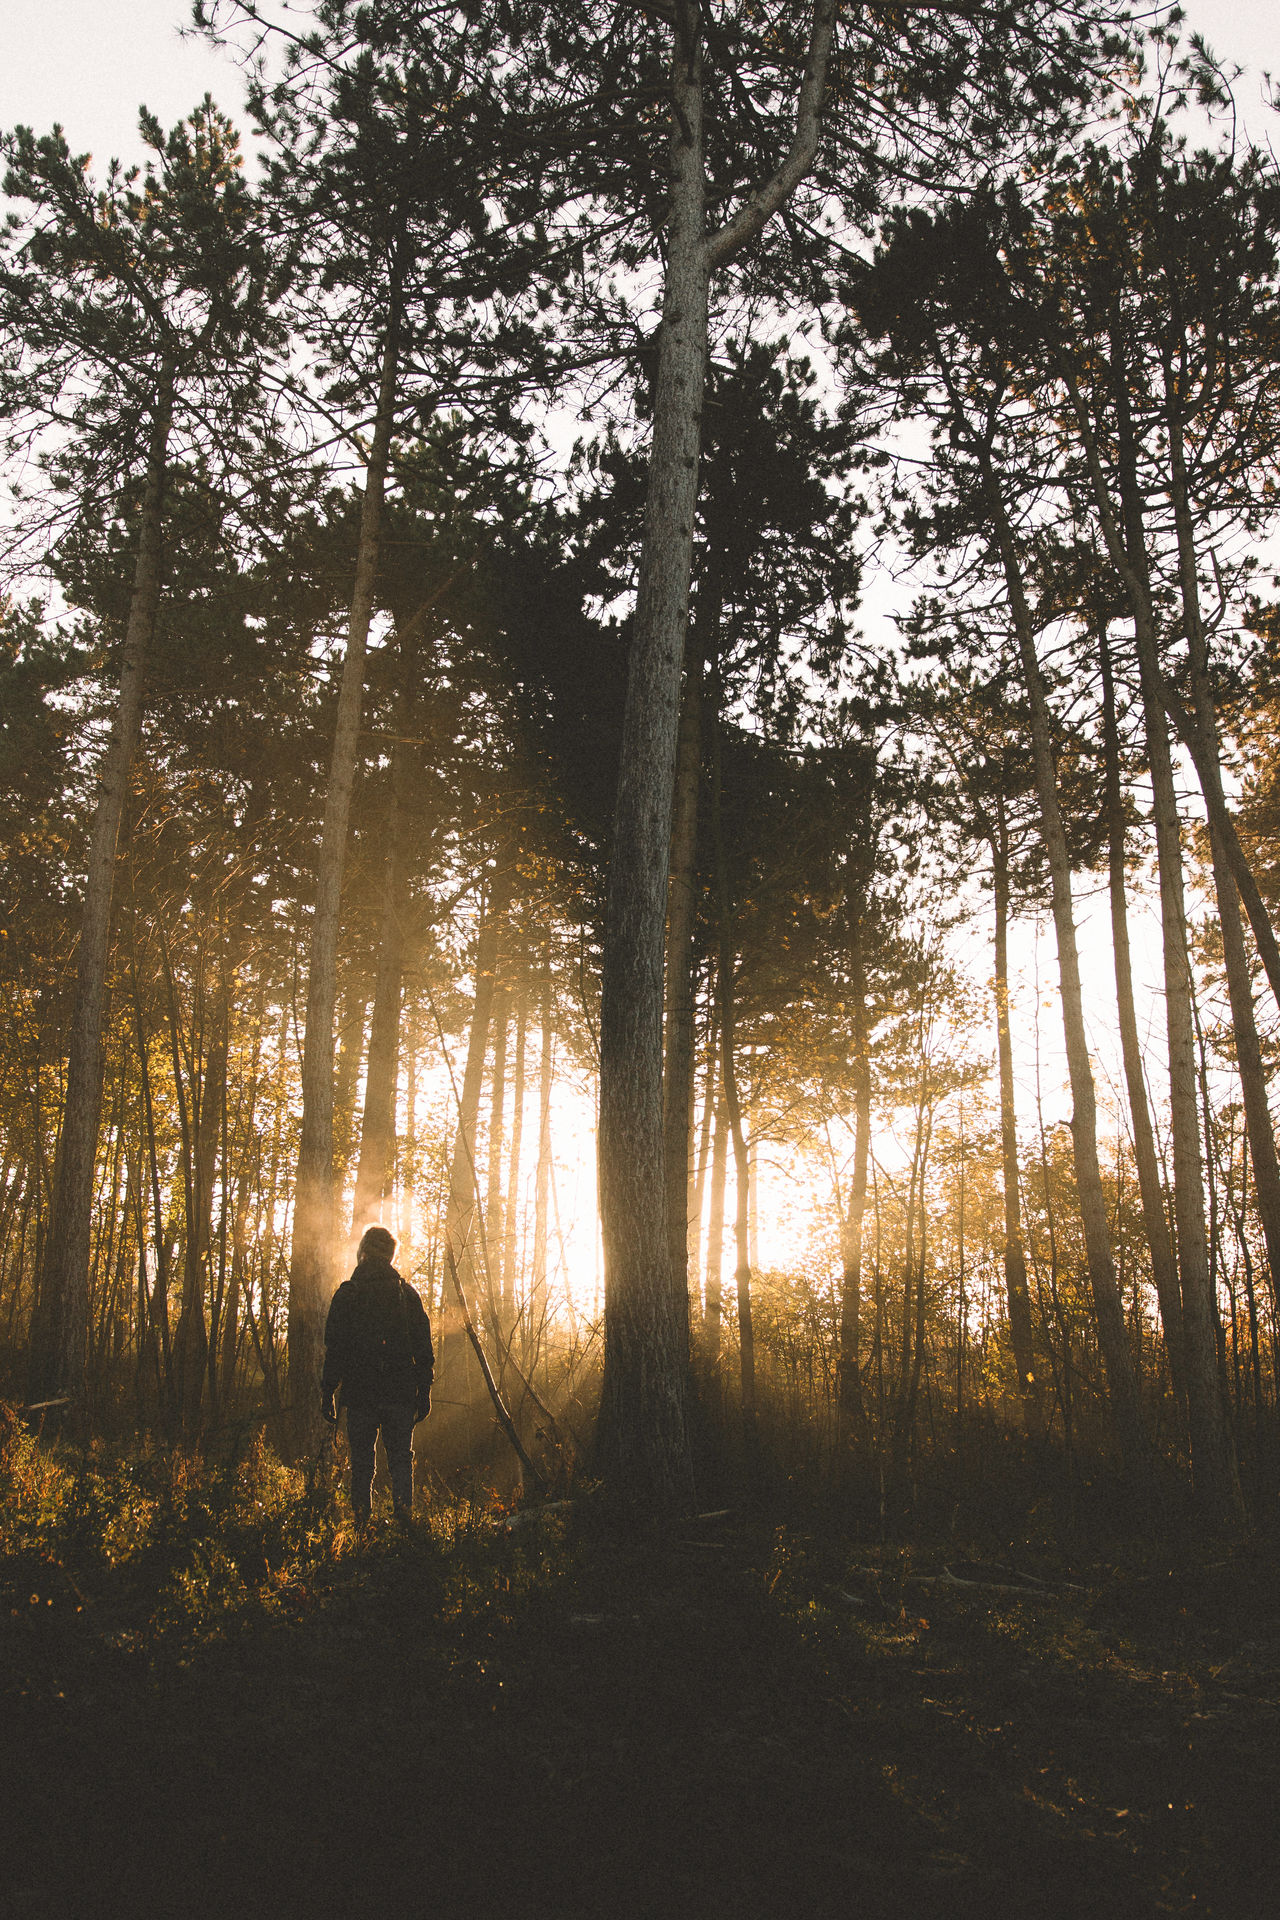 Rear view of man standing by trees in forest during sunset